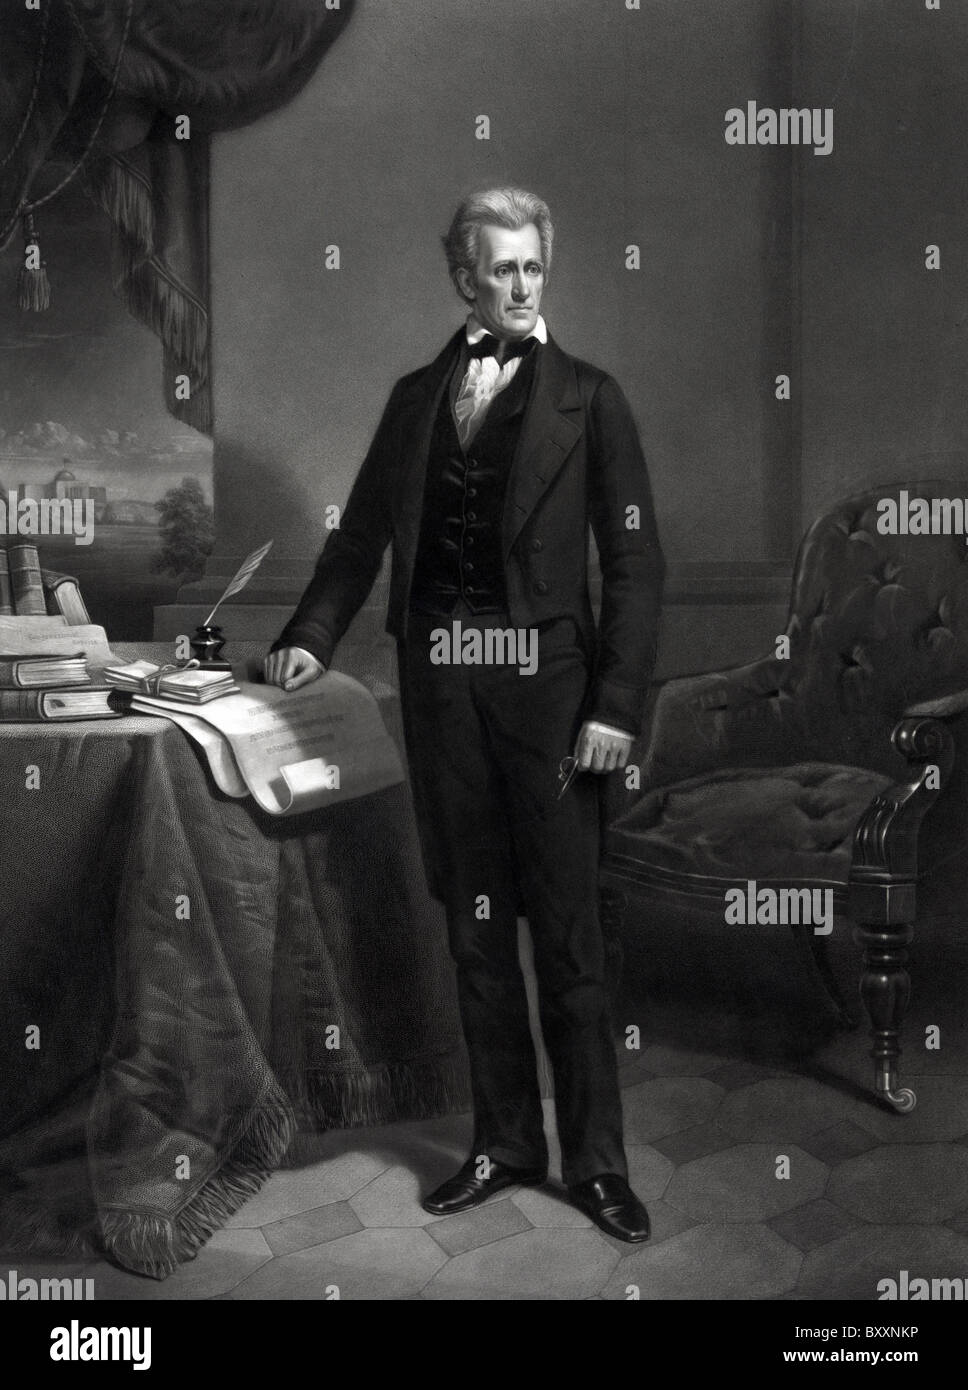 Andrew Jackson,  President Andrew Jackson the 7th President of the United States. - Stock Image